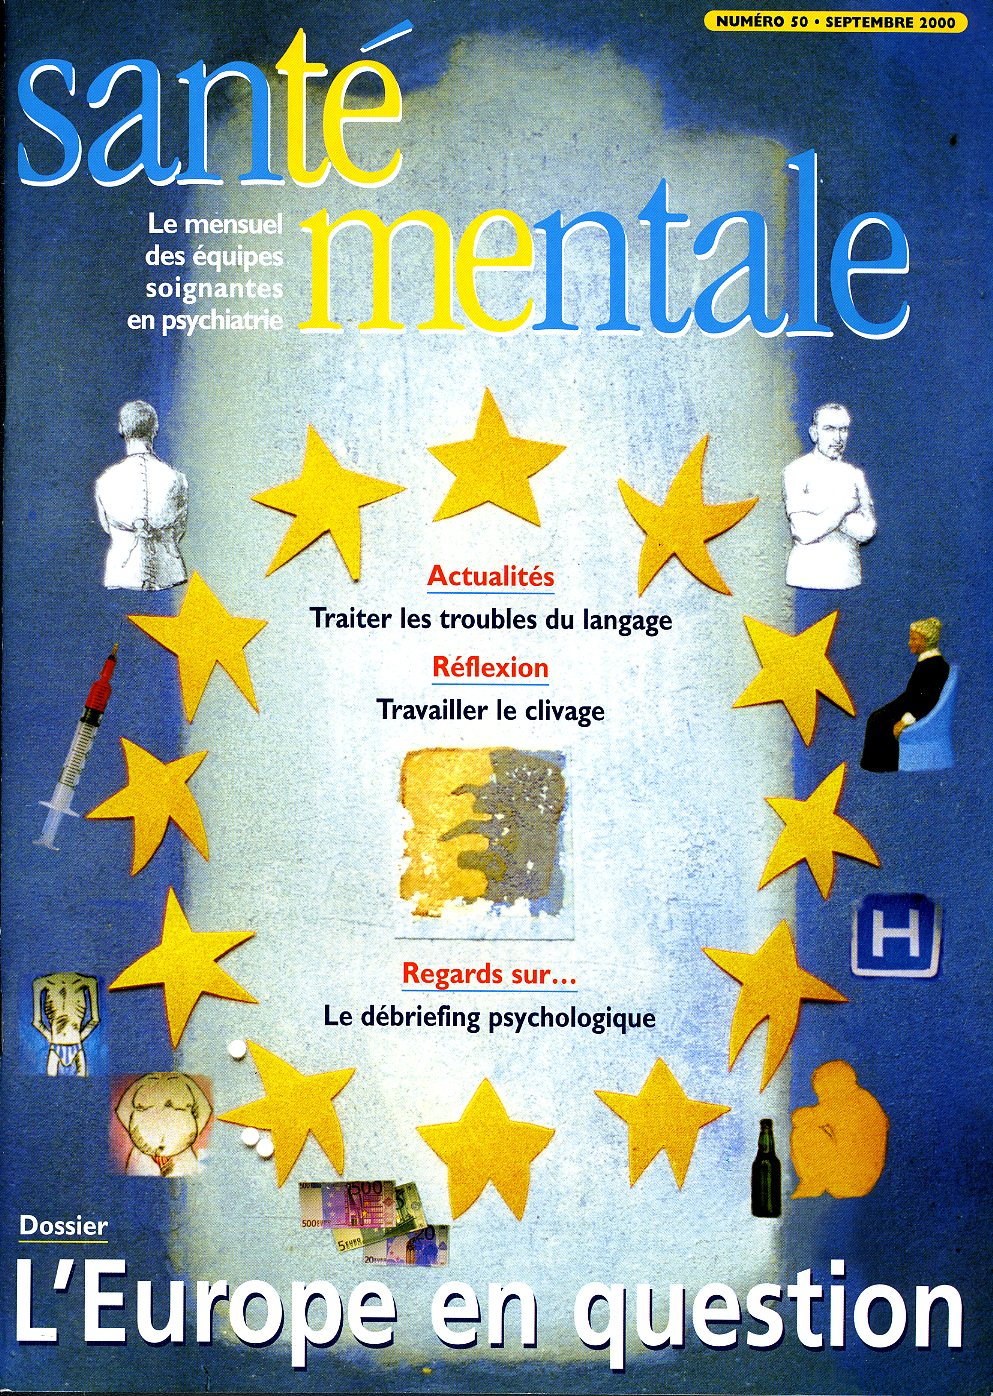 Couverture N°50 septembre 2000